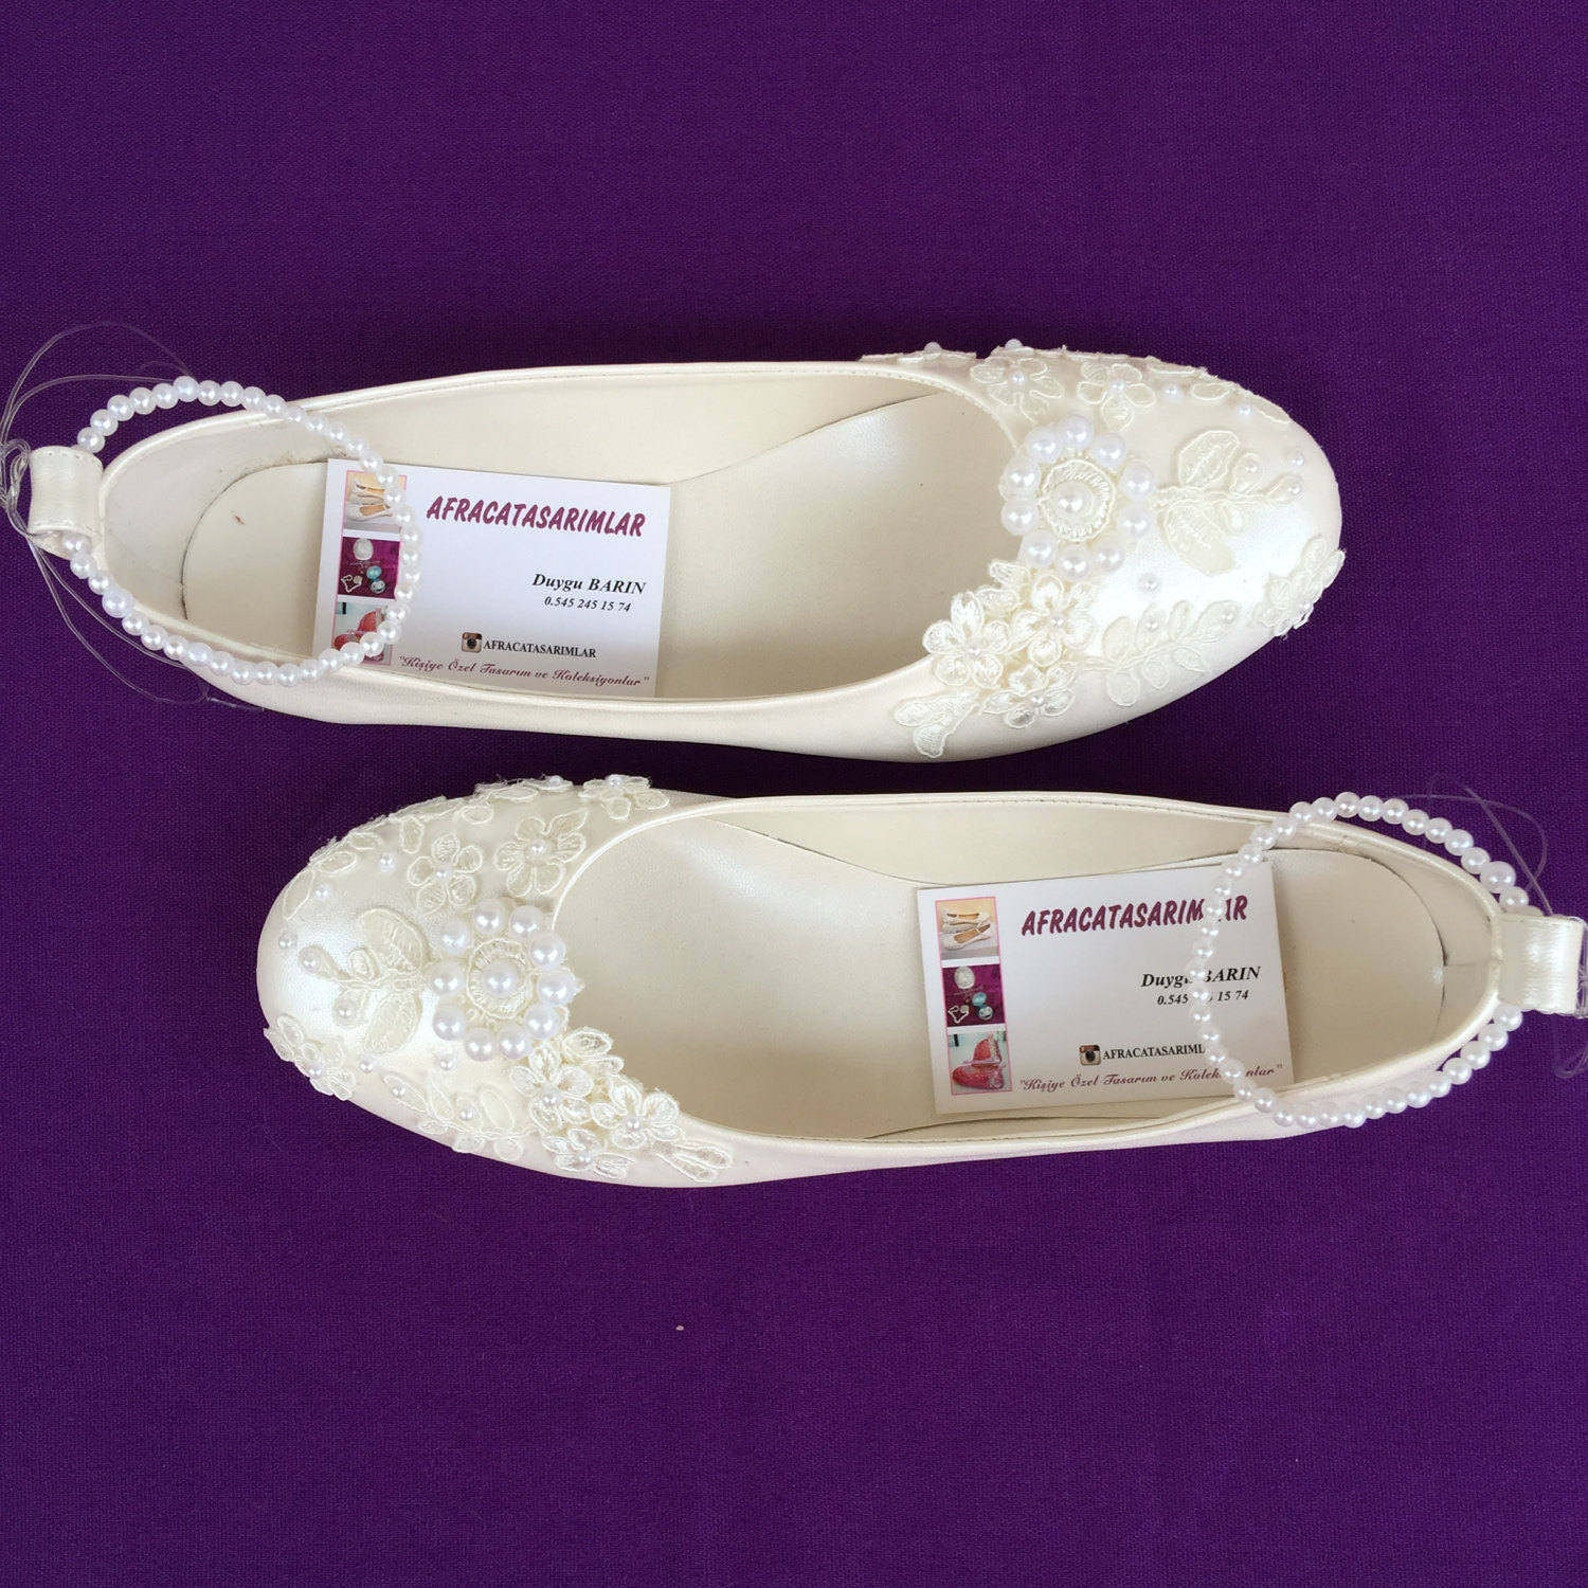 weddings, flat wedding shoes, lace shoes, pearl wedding shoes, bridal flats, lace wedding shoes, ballet shoes, princess ballet s